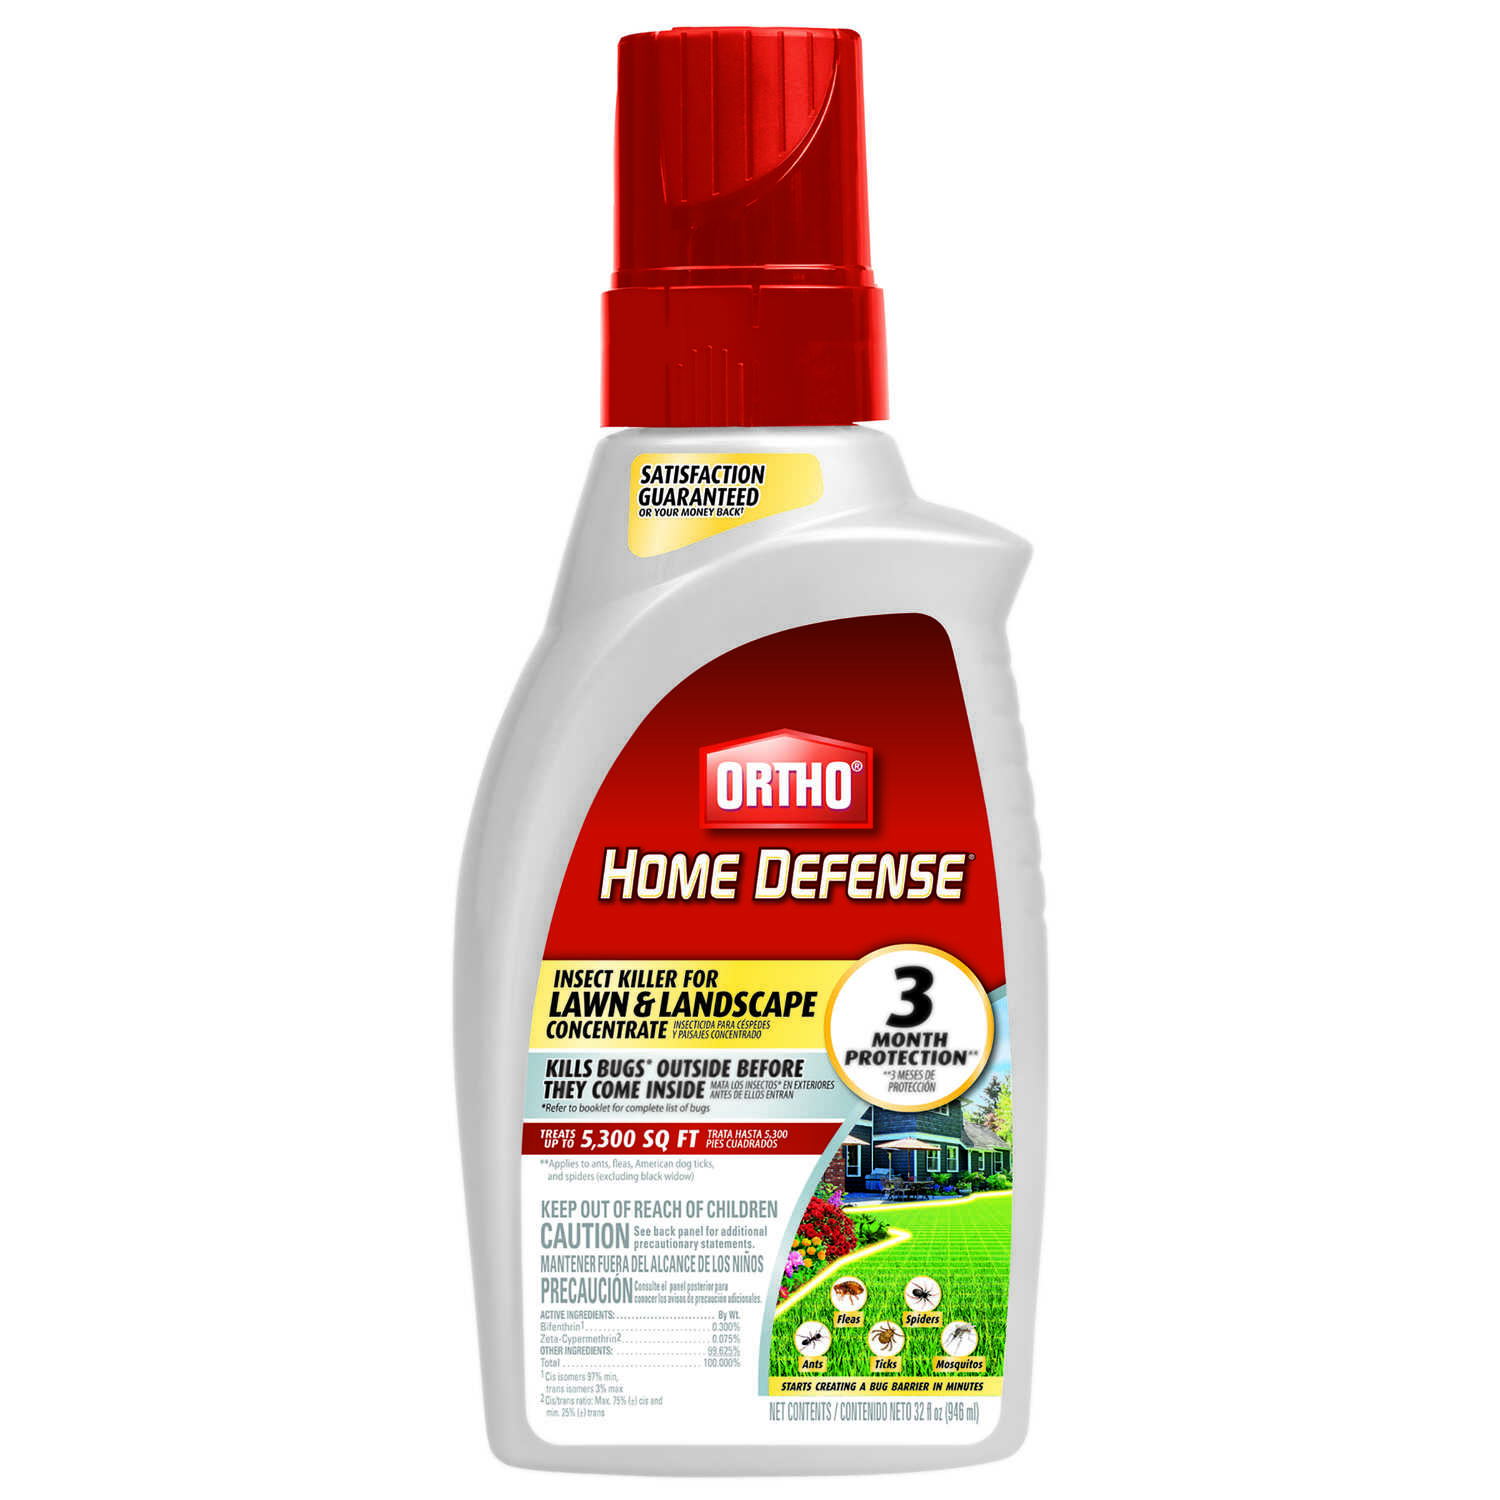 Ortho  Home Defense for Lawn & Landscape  Insect Killer  32 oz.